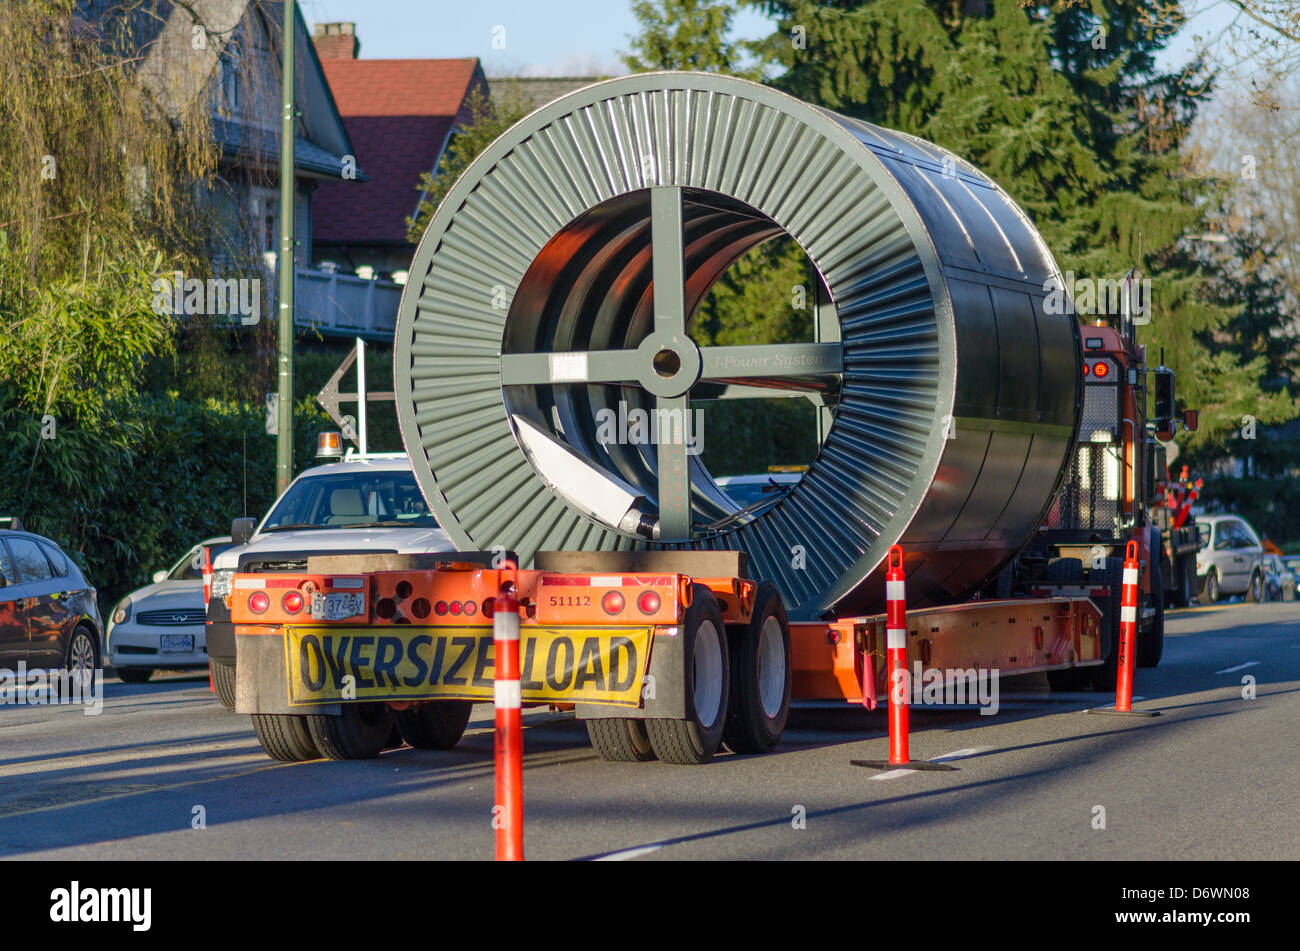 Oversize load on truck. - Stock Image